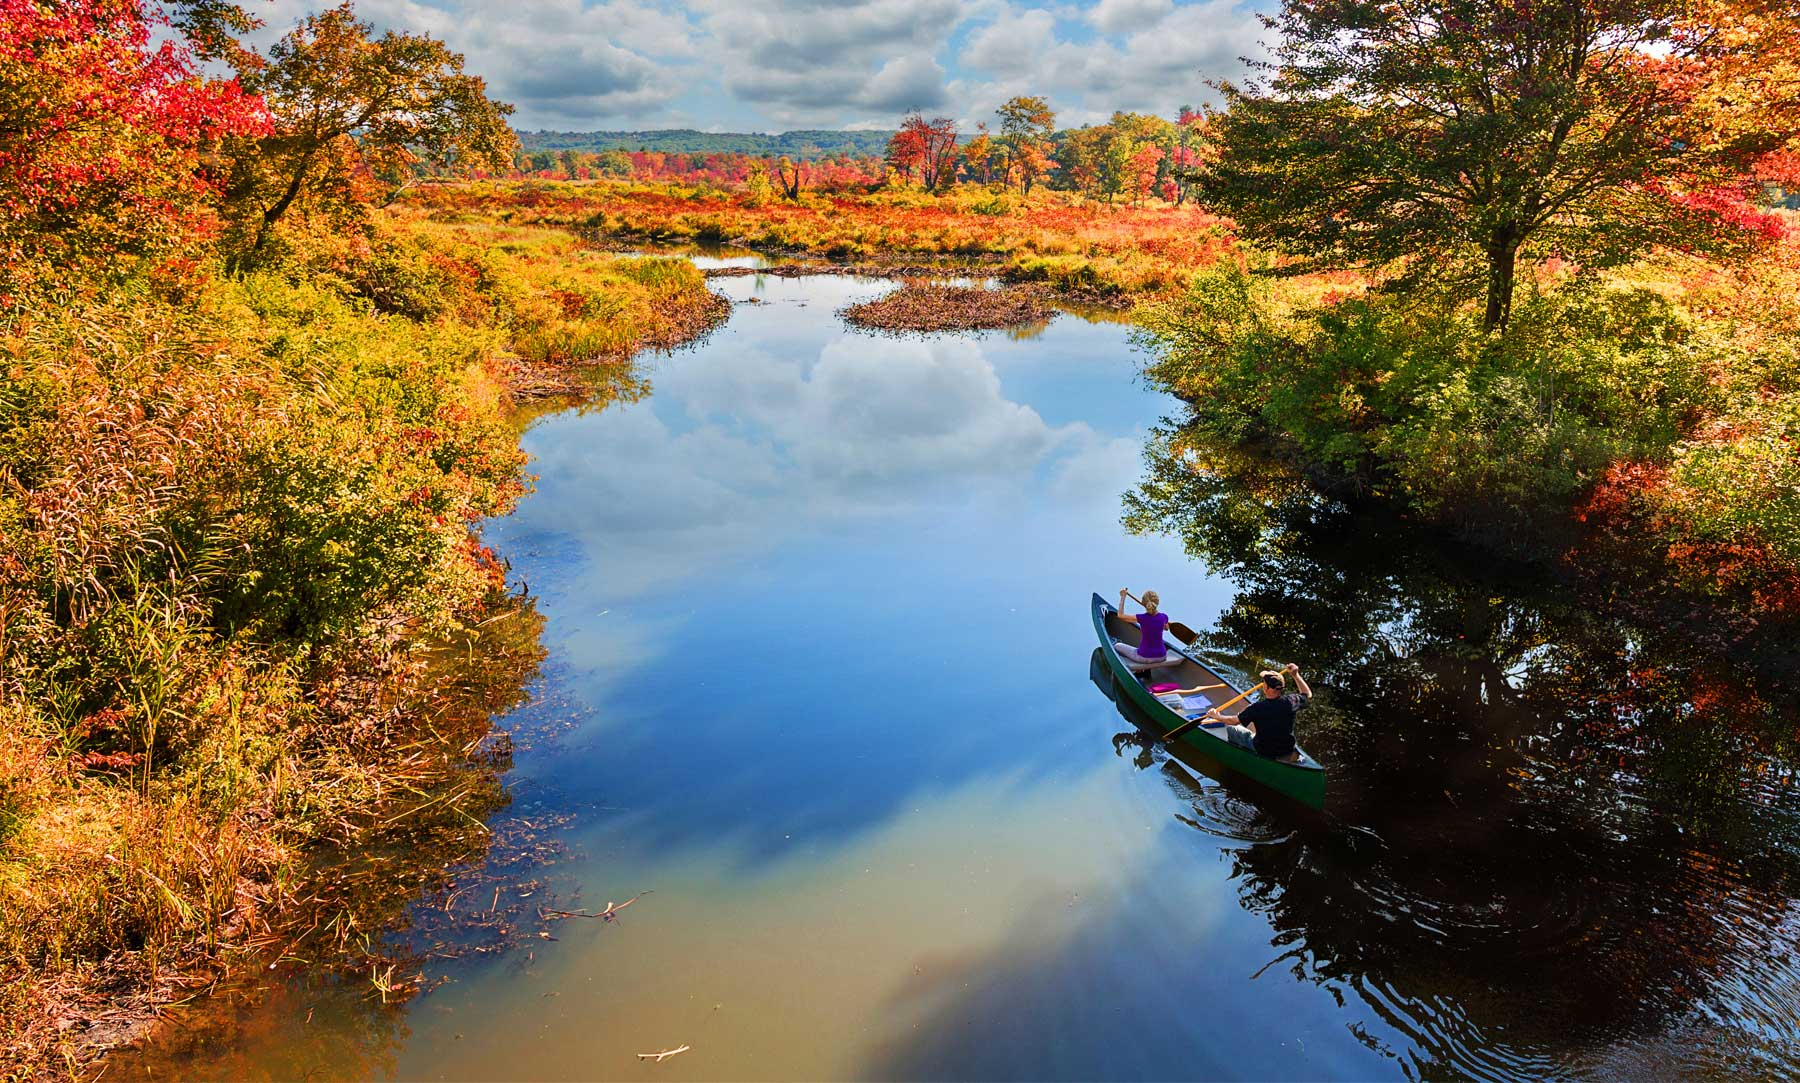 Two people on a canoe, on a river, surrounded by fall foliage